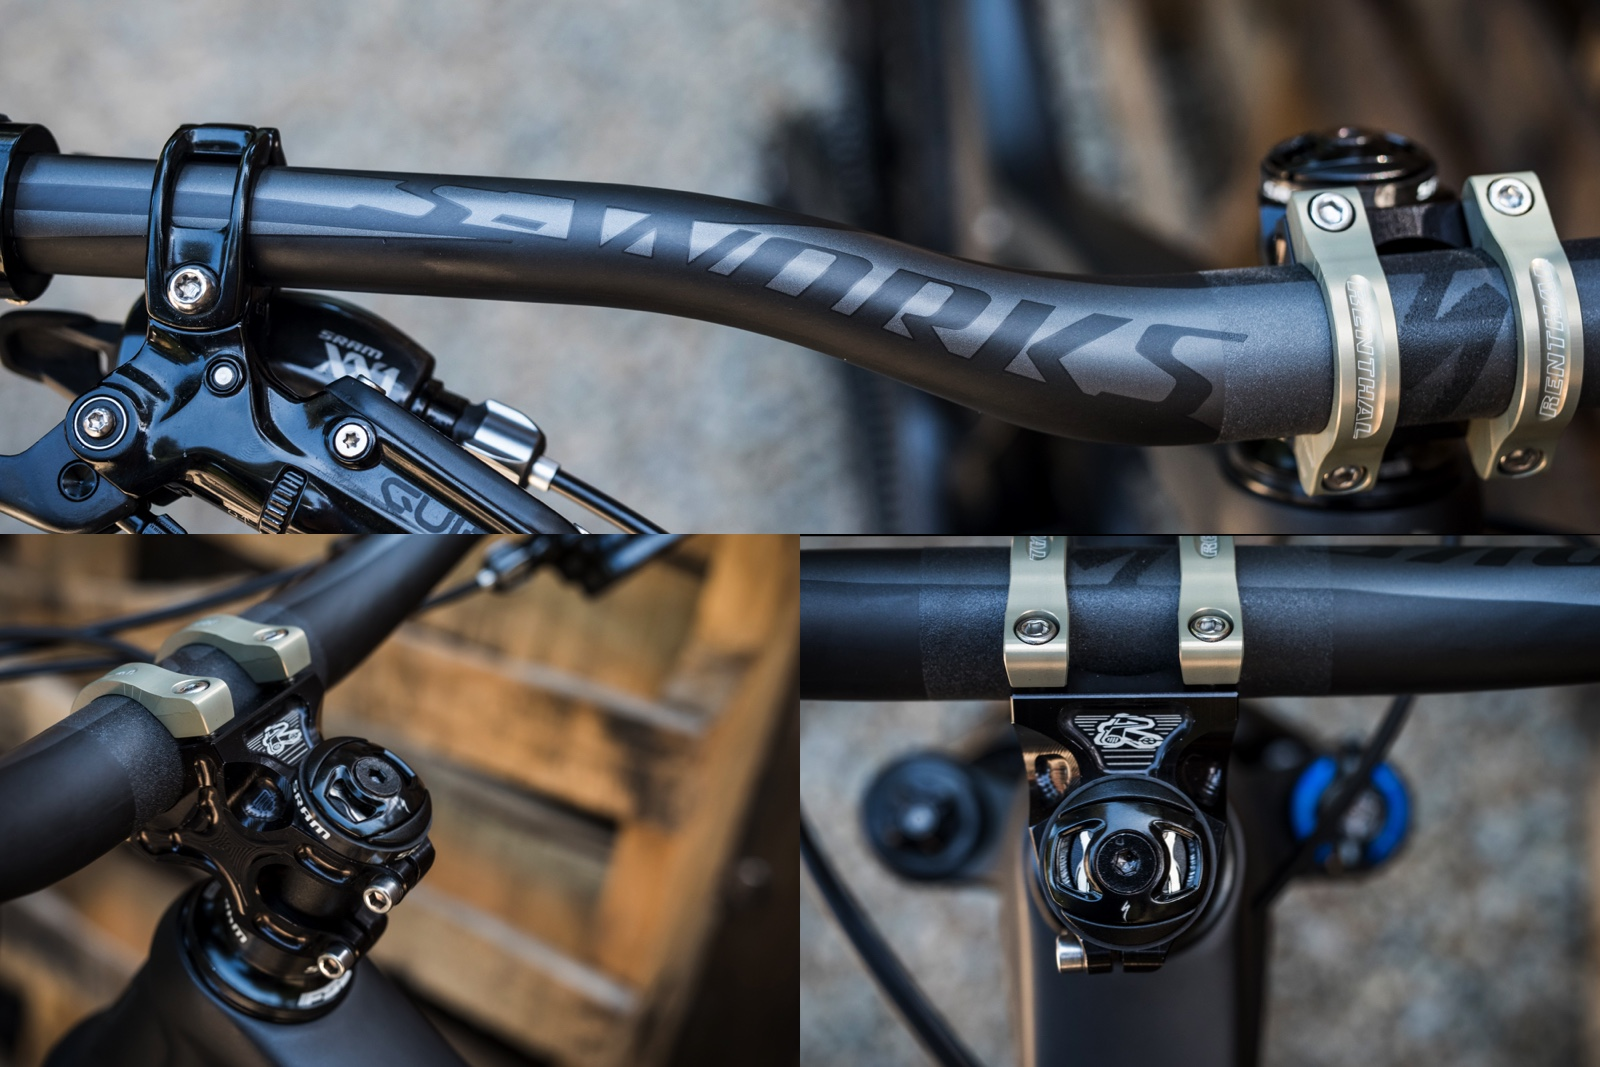 Specialized S-Works DH bar.  Carbon Fiber, 780mm wide, 240 Grams and it feels just right in your hands.  50mm Renthal Apex stem has been a proven winner for us as well.  Can't forget the SWAT EMT top cap chain tool.  Lifesaver.